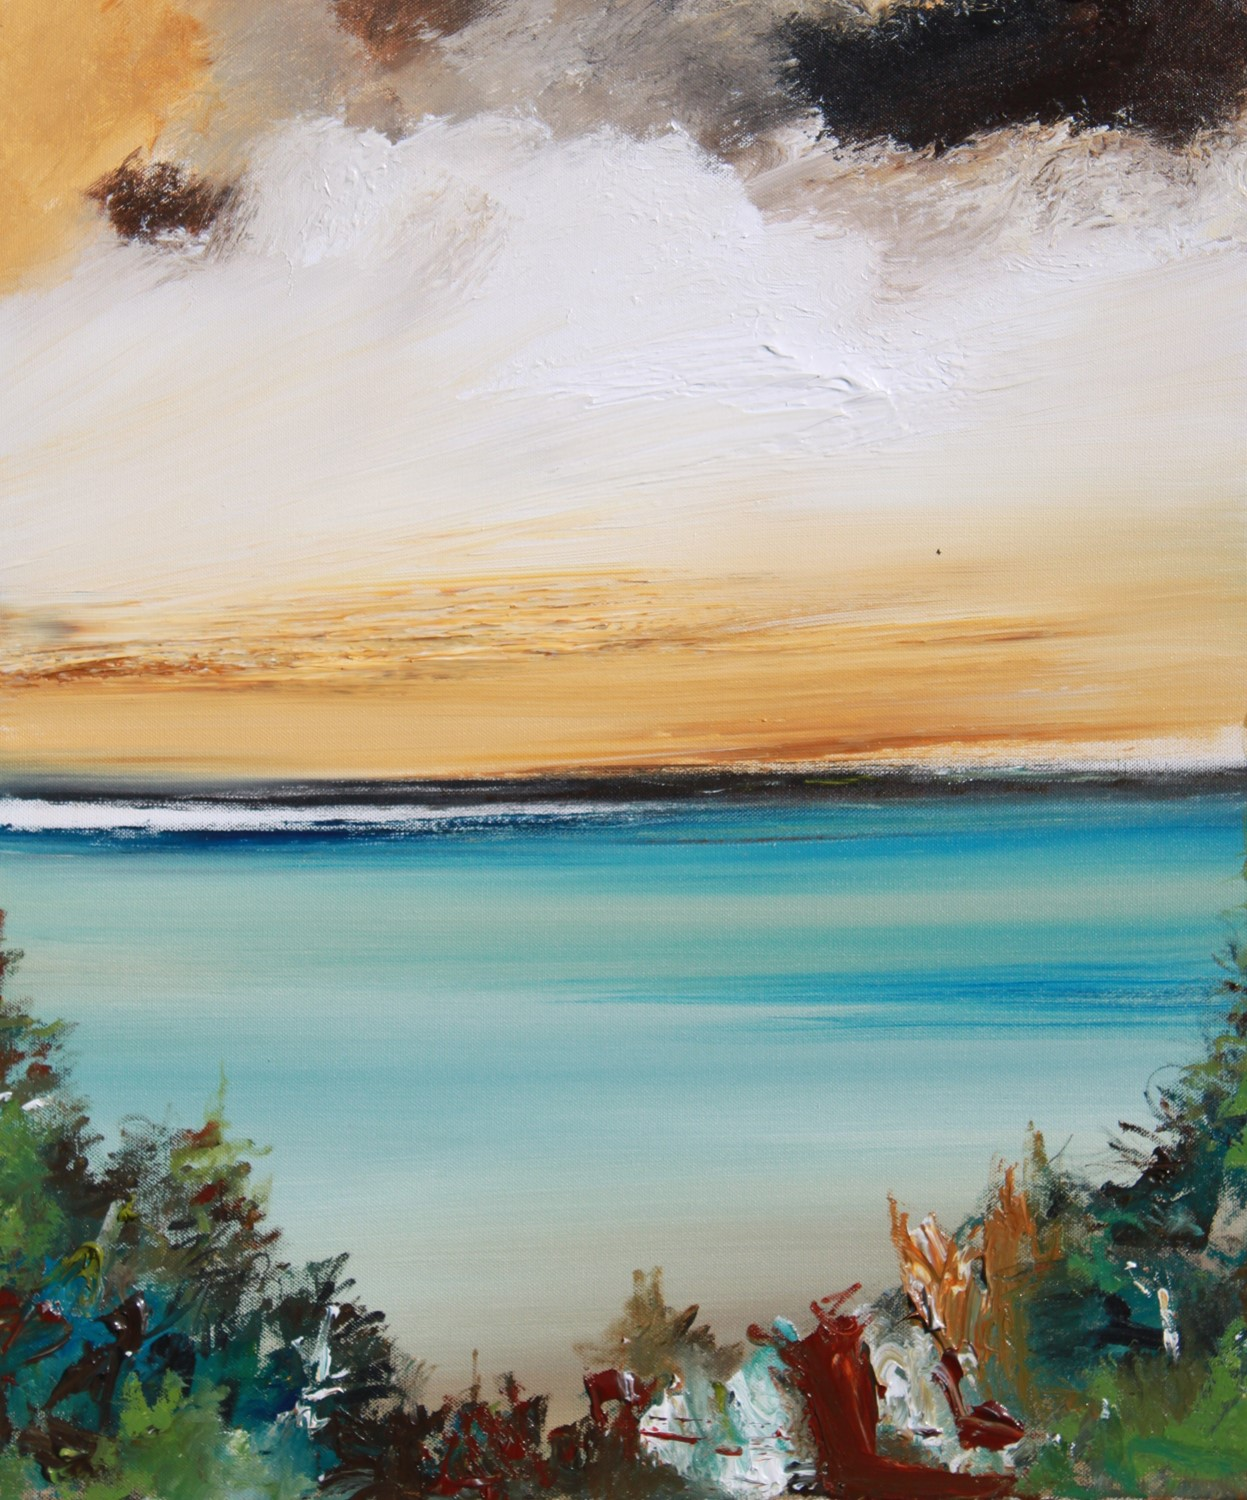 'Calm Outlook' by artist Rosanne Barr